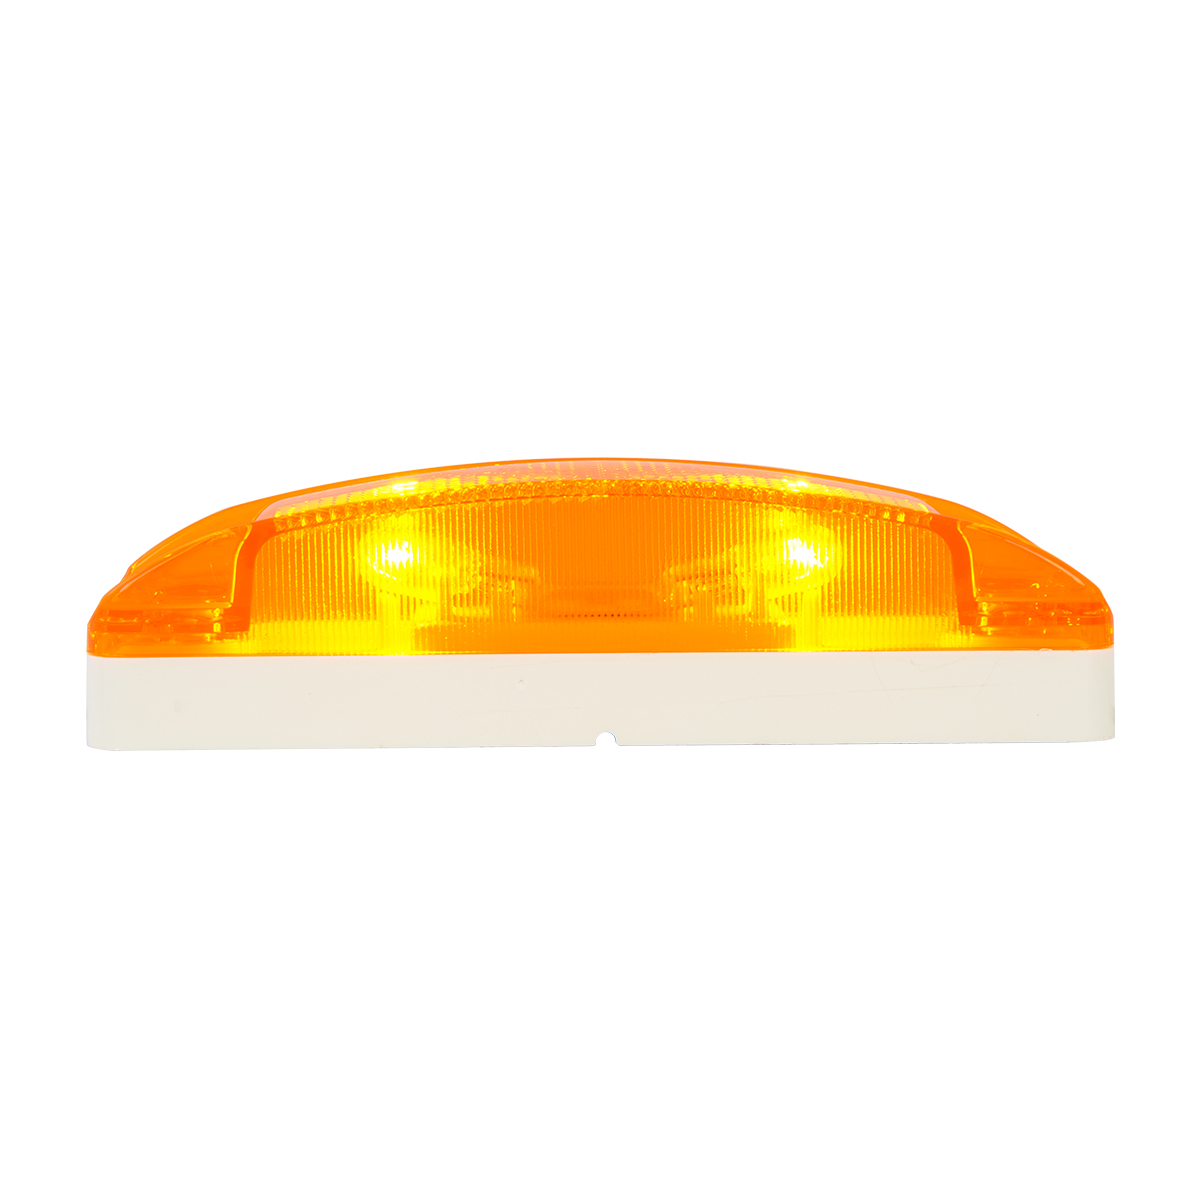 78285 Turtle Style Rectangular Sealed Marker Lights w/ Reflective Lens